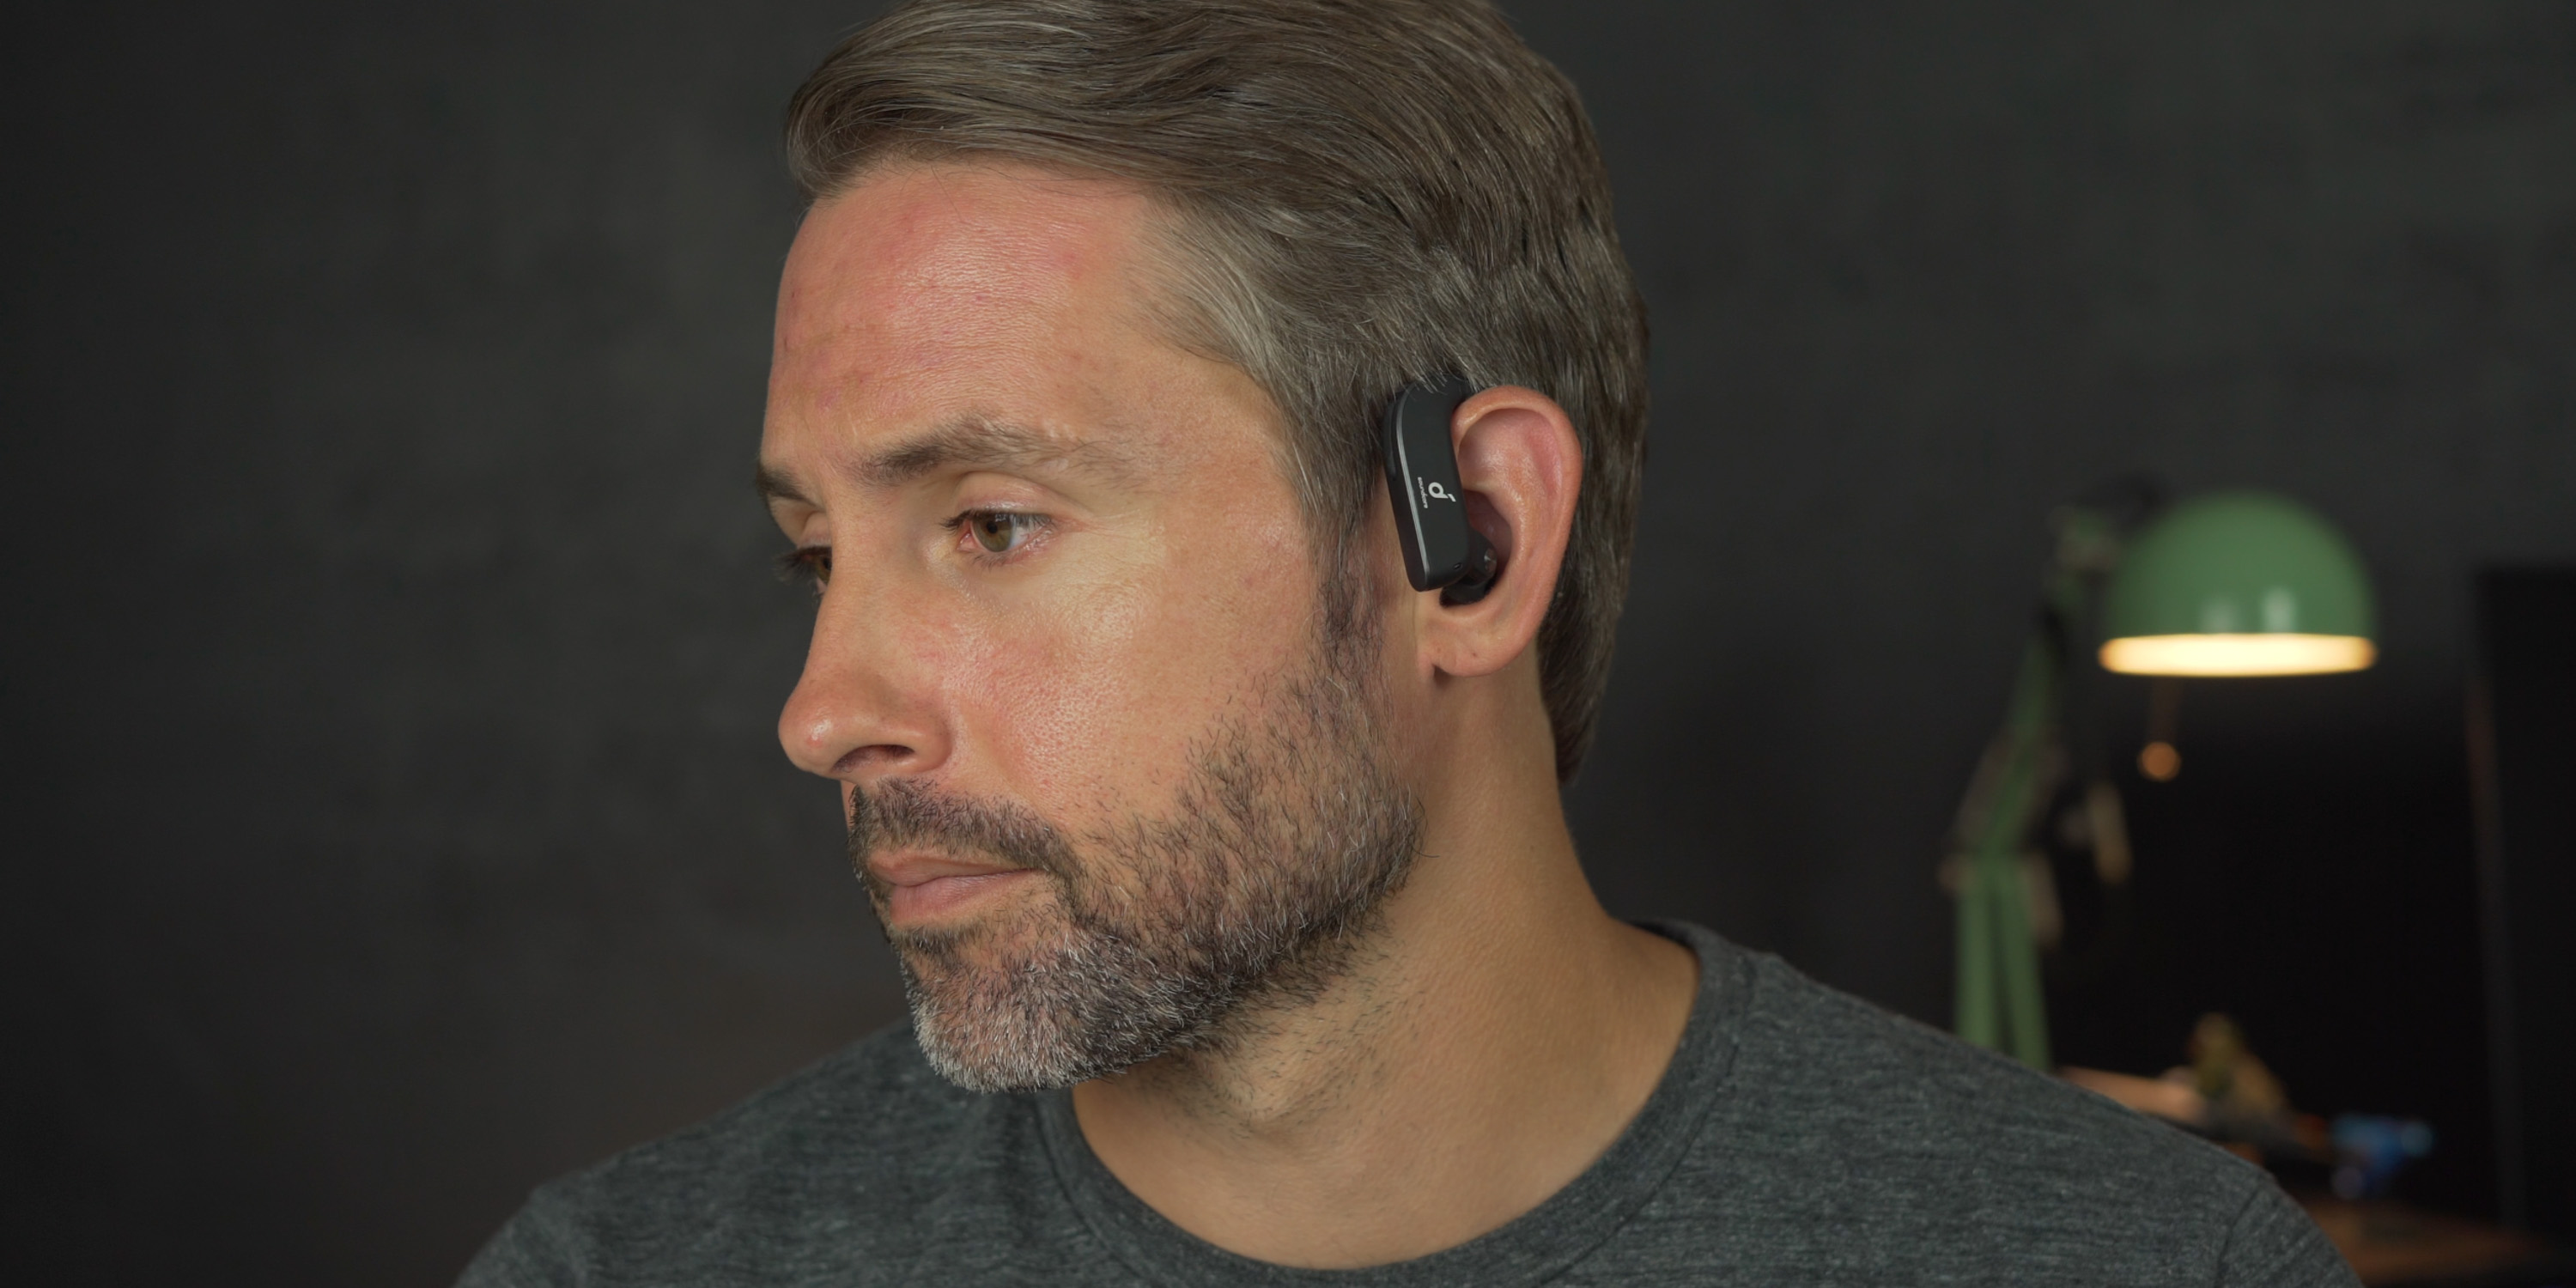 Wearing the Soundcore Spirit X2 earbuds